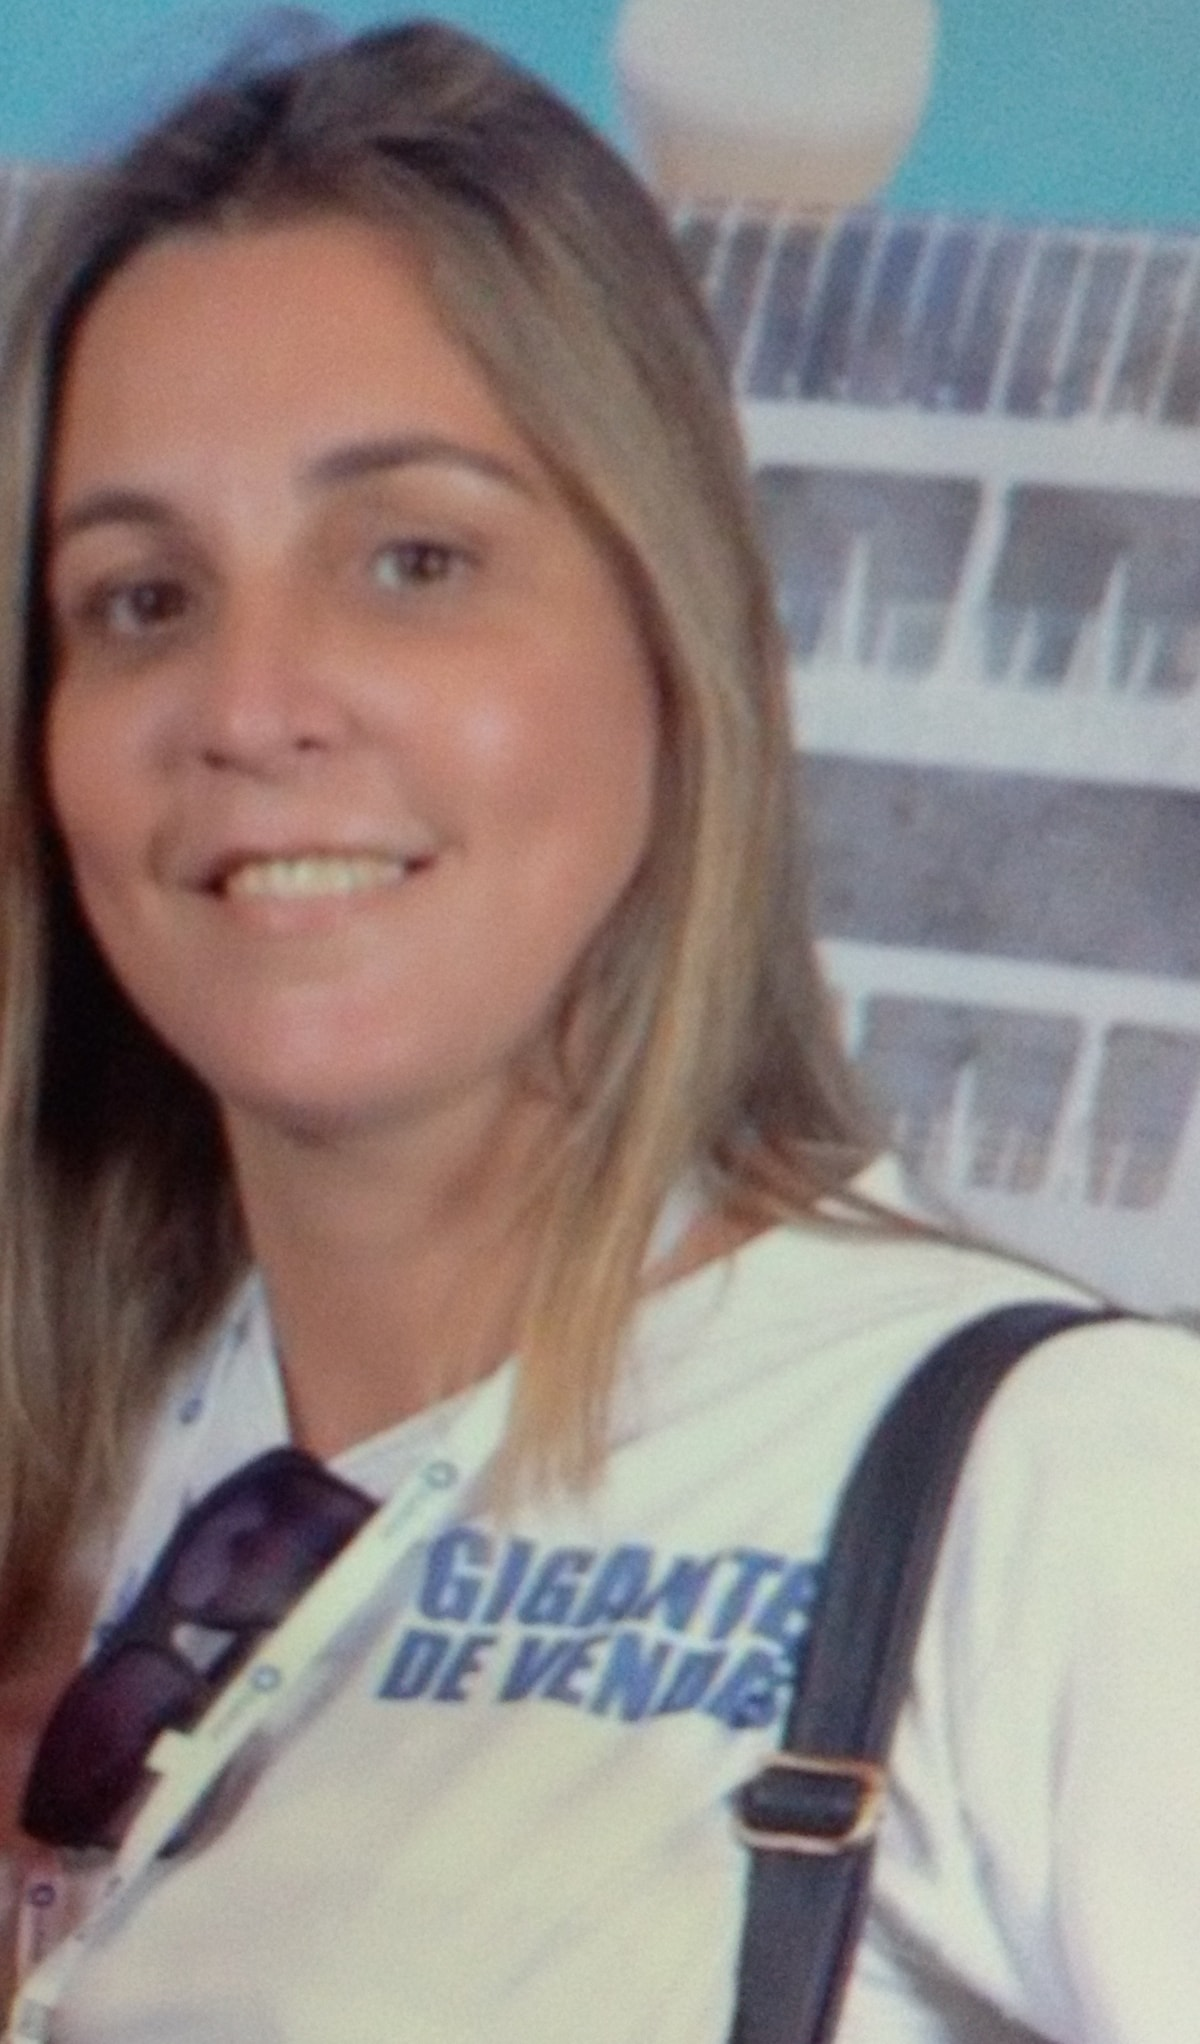 Marcelle from Niteroi